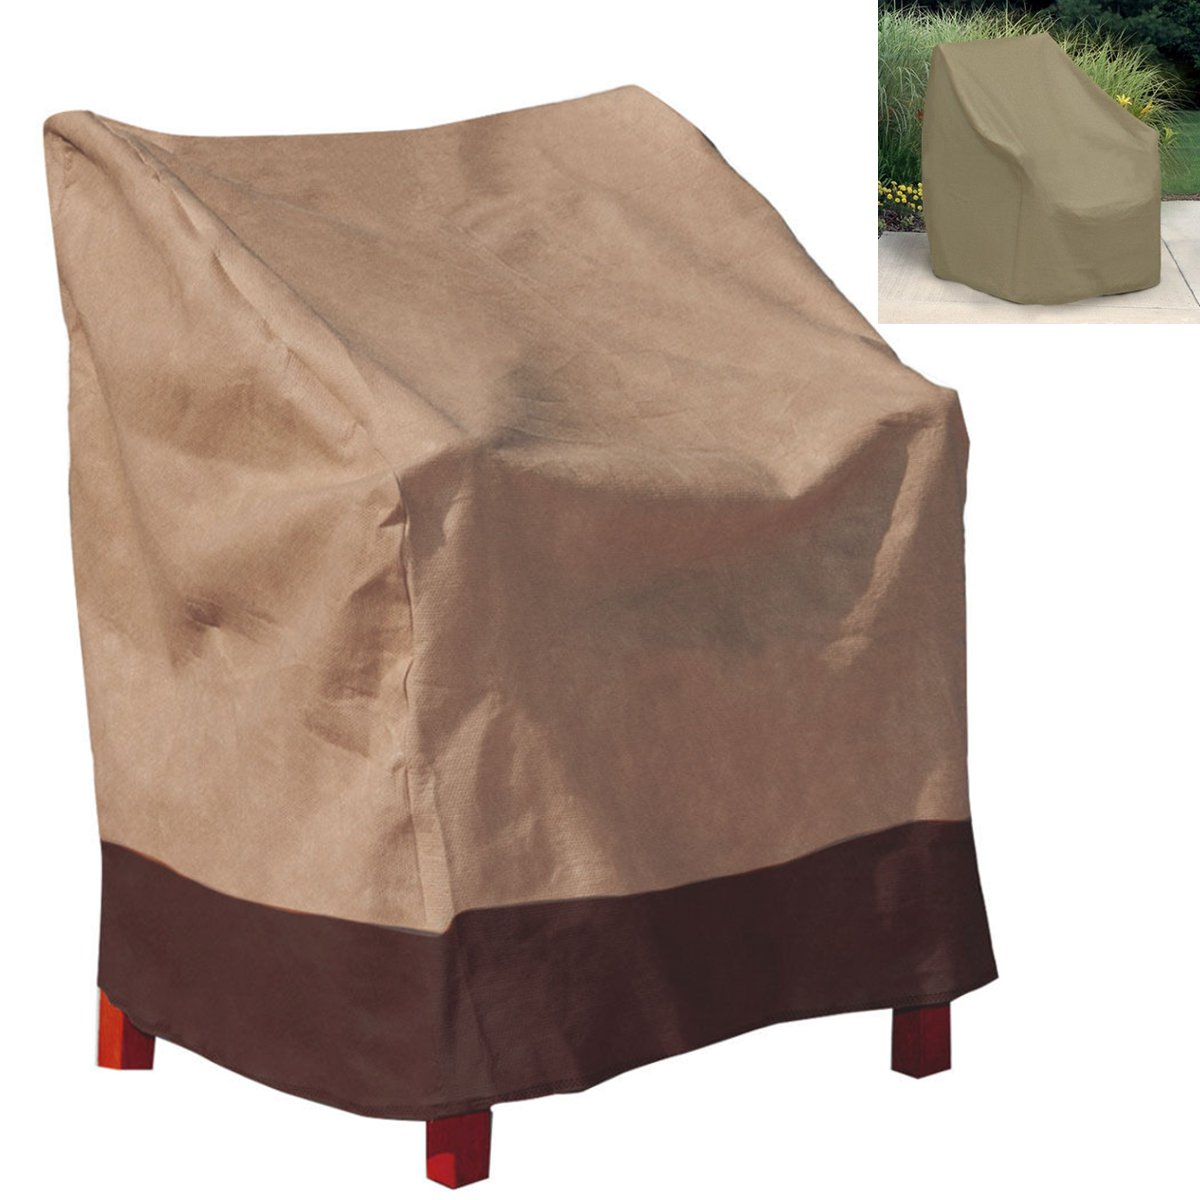 Patio Chair Cover Polyester Waterproof Single High Back Chair Covers Outdoor  Yard Furniture Protective Cover Textiles Supplies In Chair Cover From Home  ...